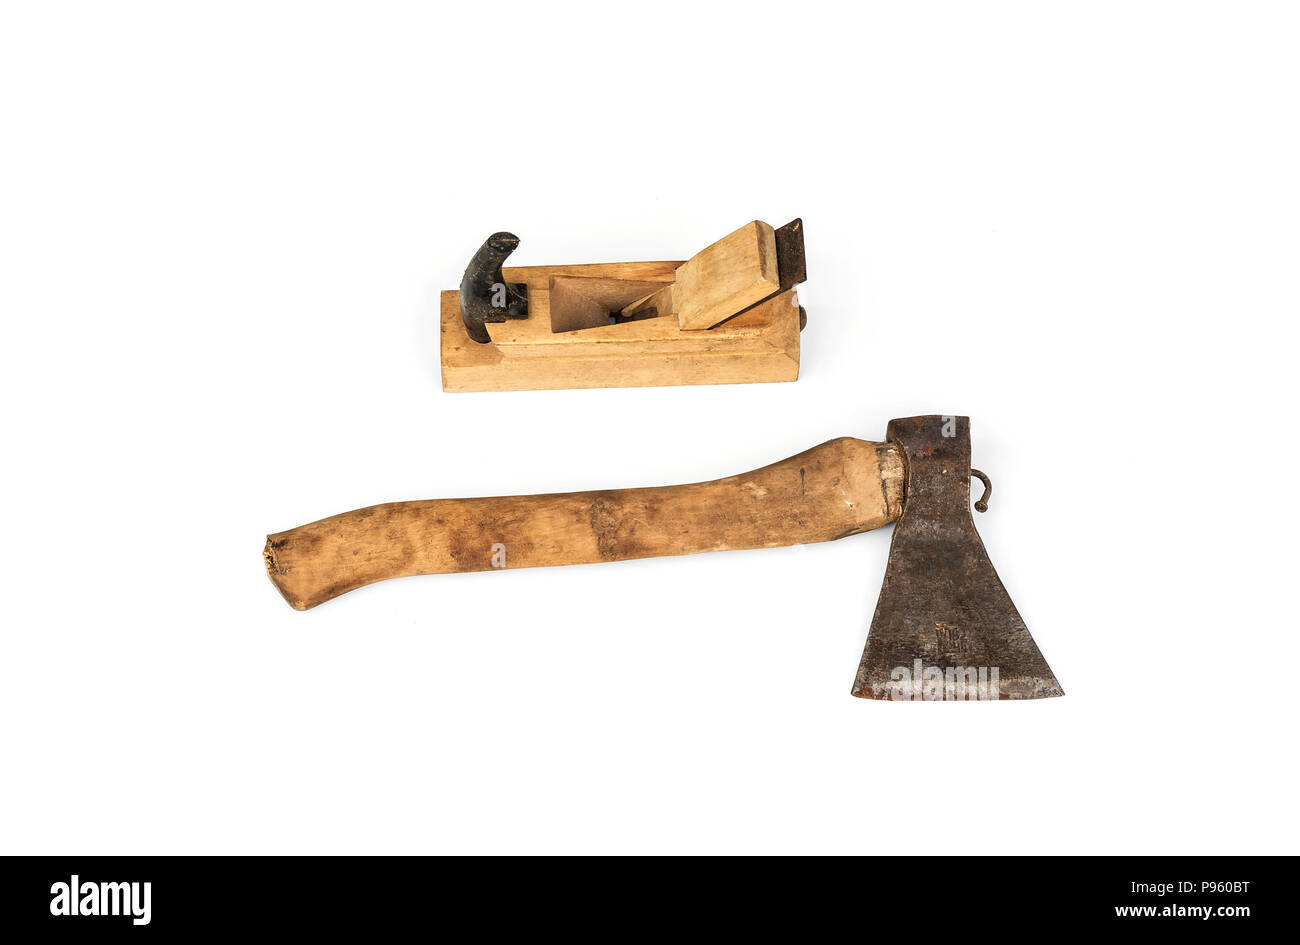 Joiner's tools. Ax and plane planes close-up on a white background. - Stock Image